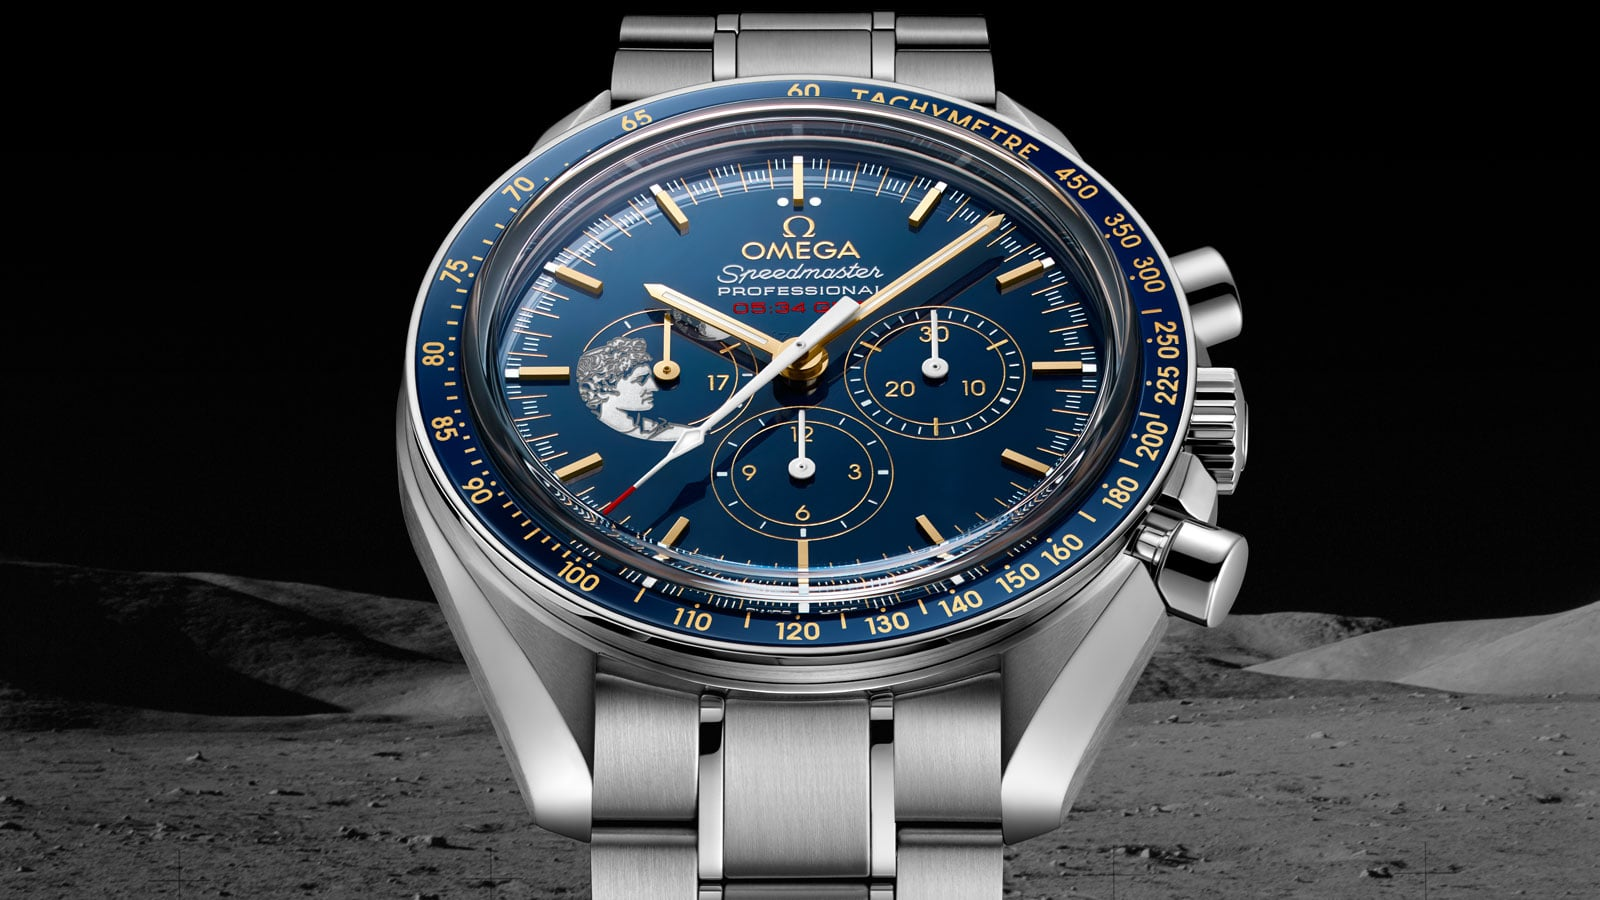 Close-up view of the OMEGA SPEEDMASTER APOLLO 17 45TH ANNIVERSARY LIMITED EDITION stainless steel model